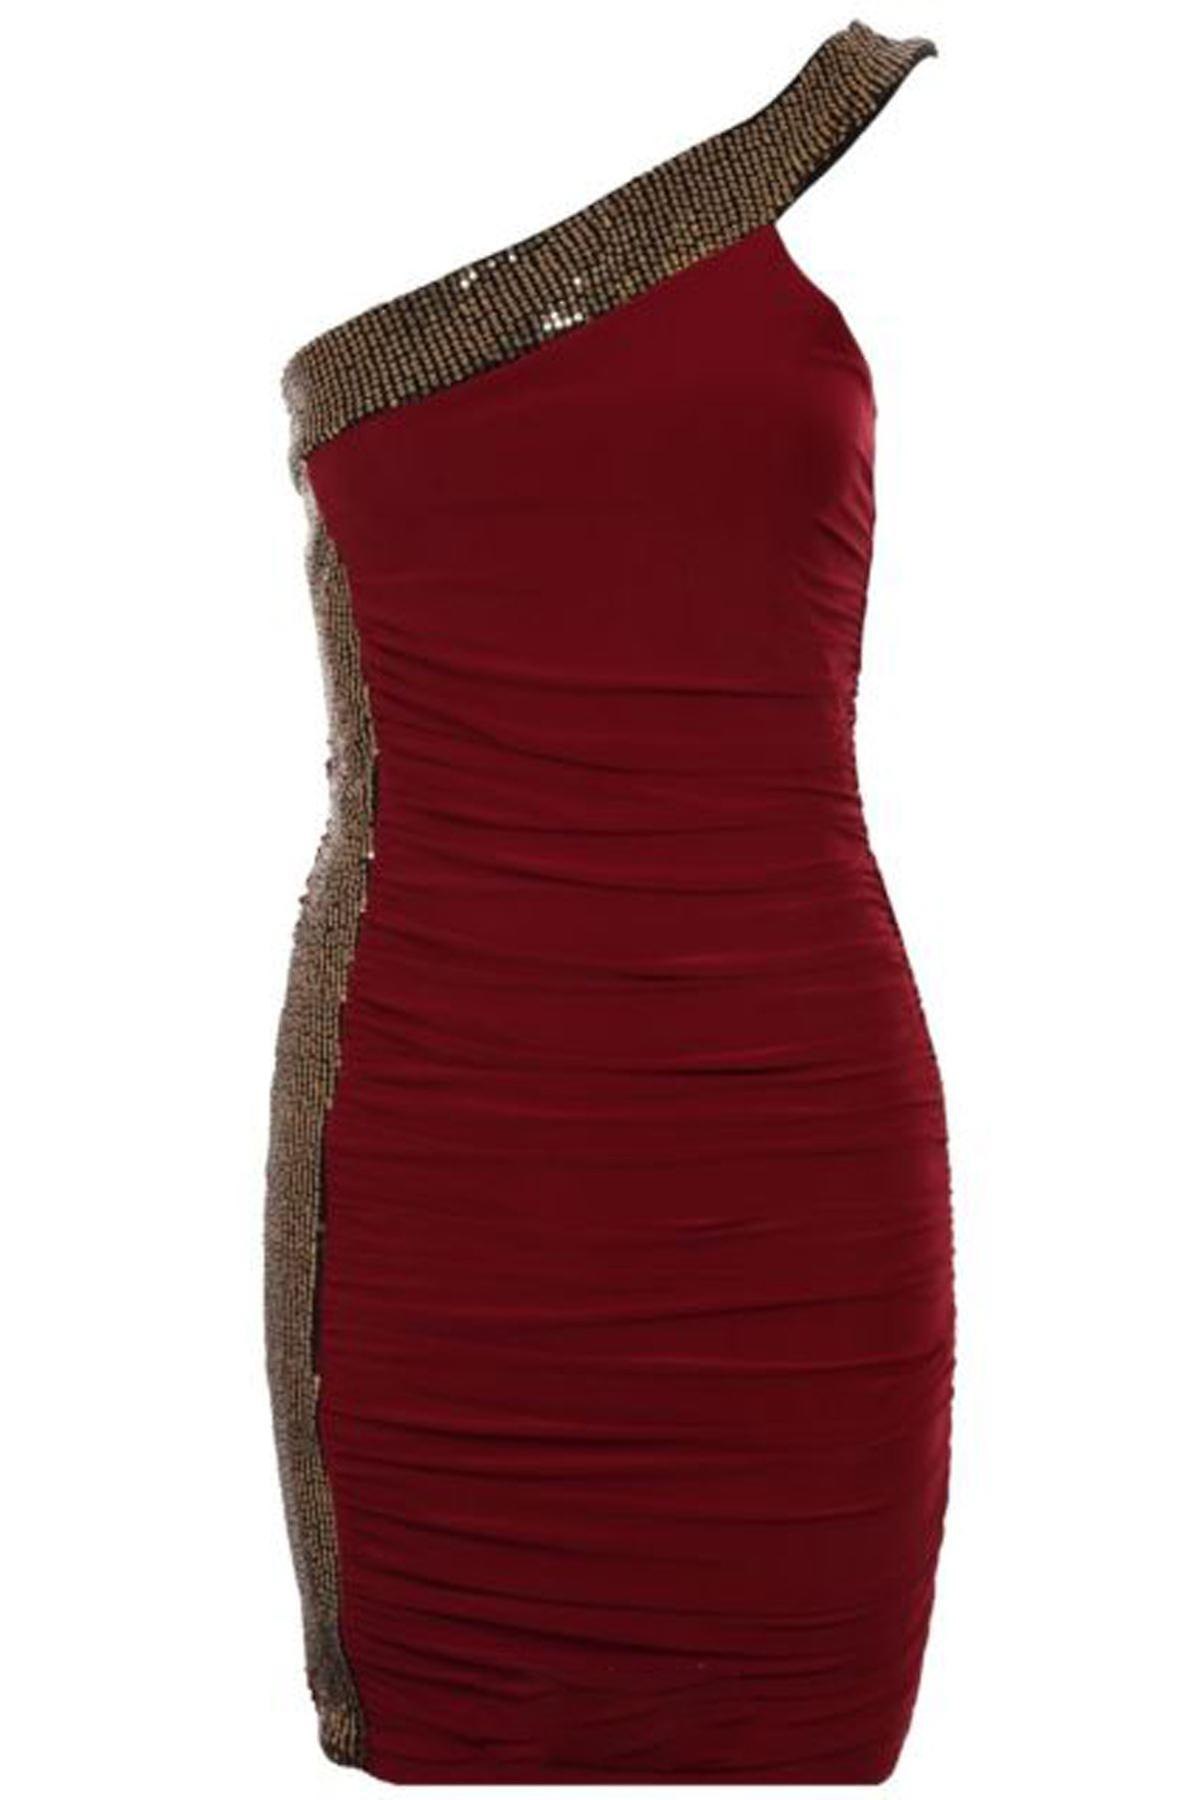 Ladies One Shoulder Side Sequin Tape Gathered Bodycon Short Party Women's Dress